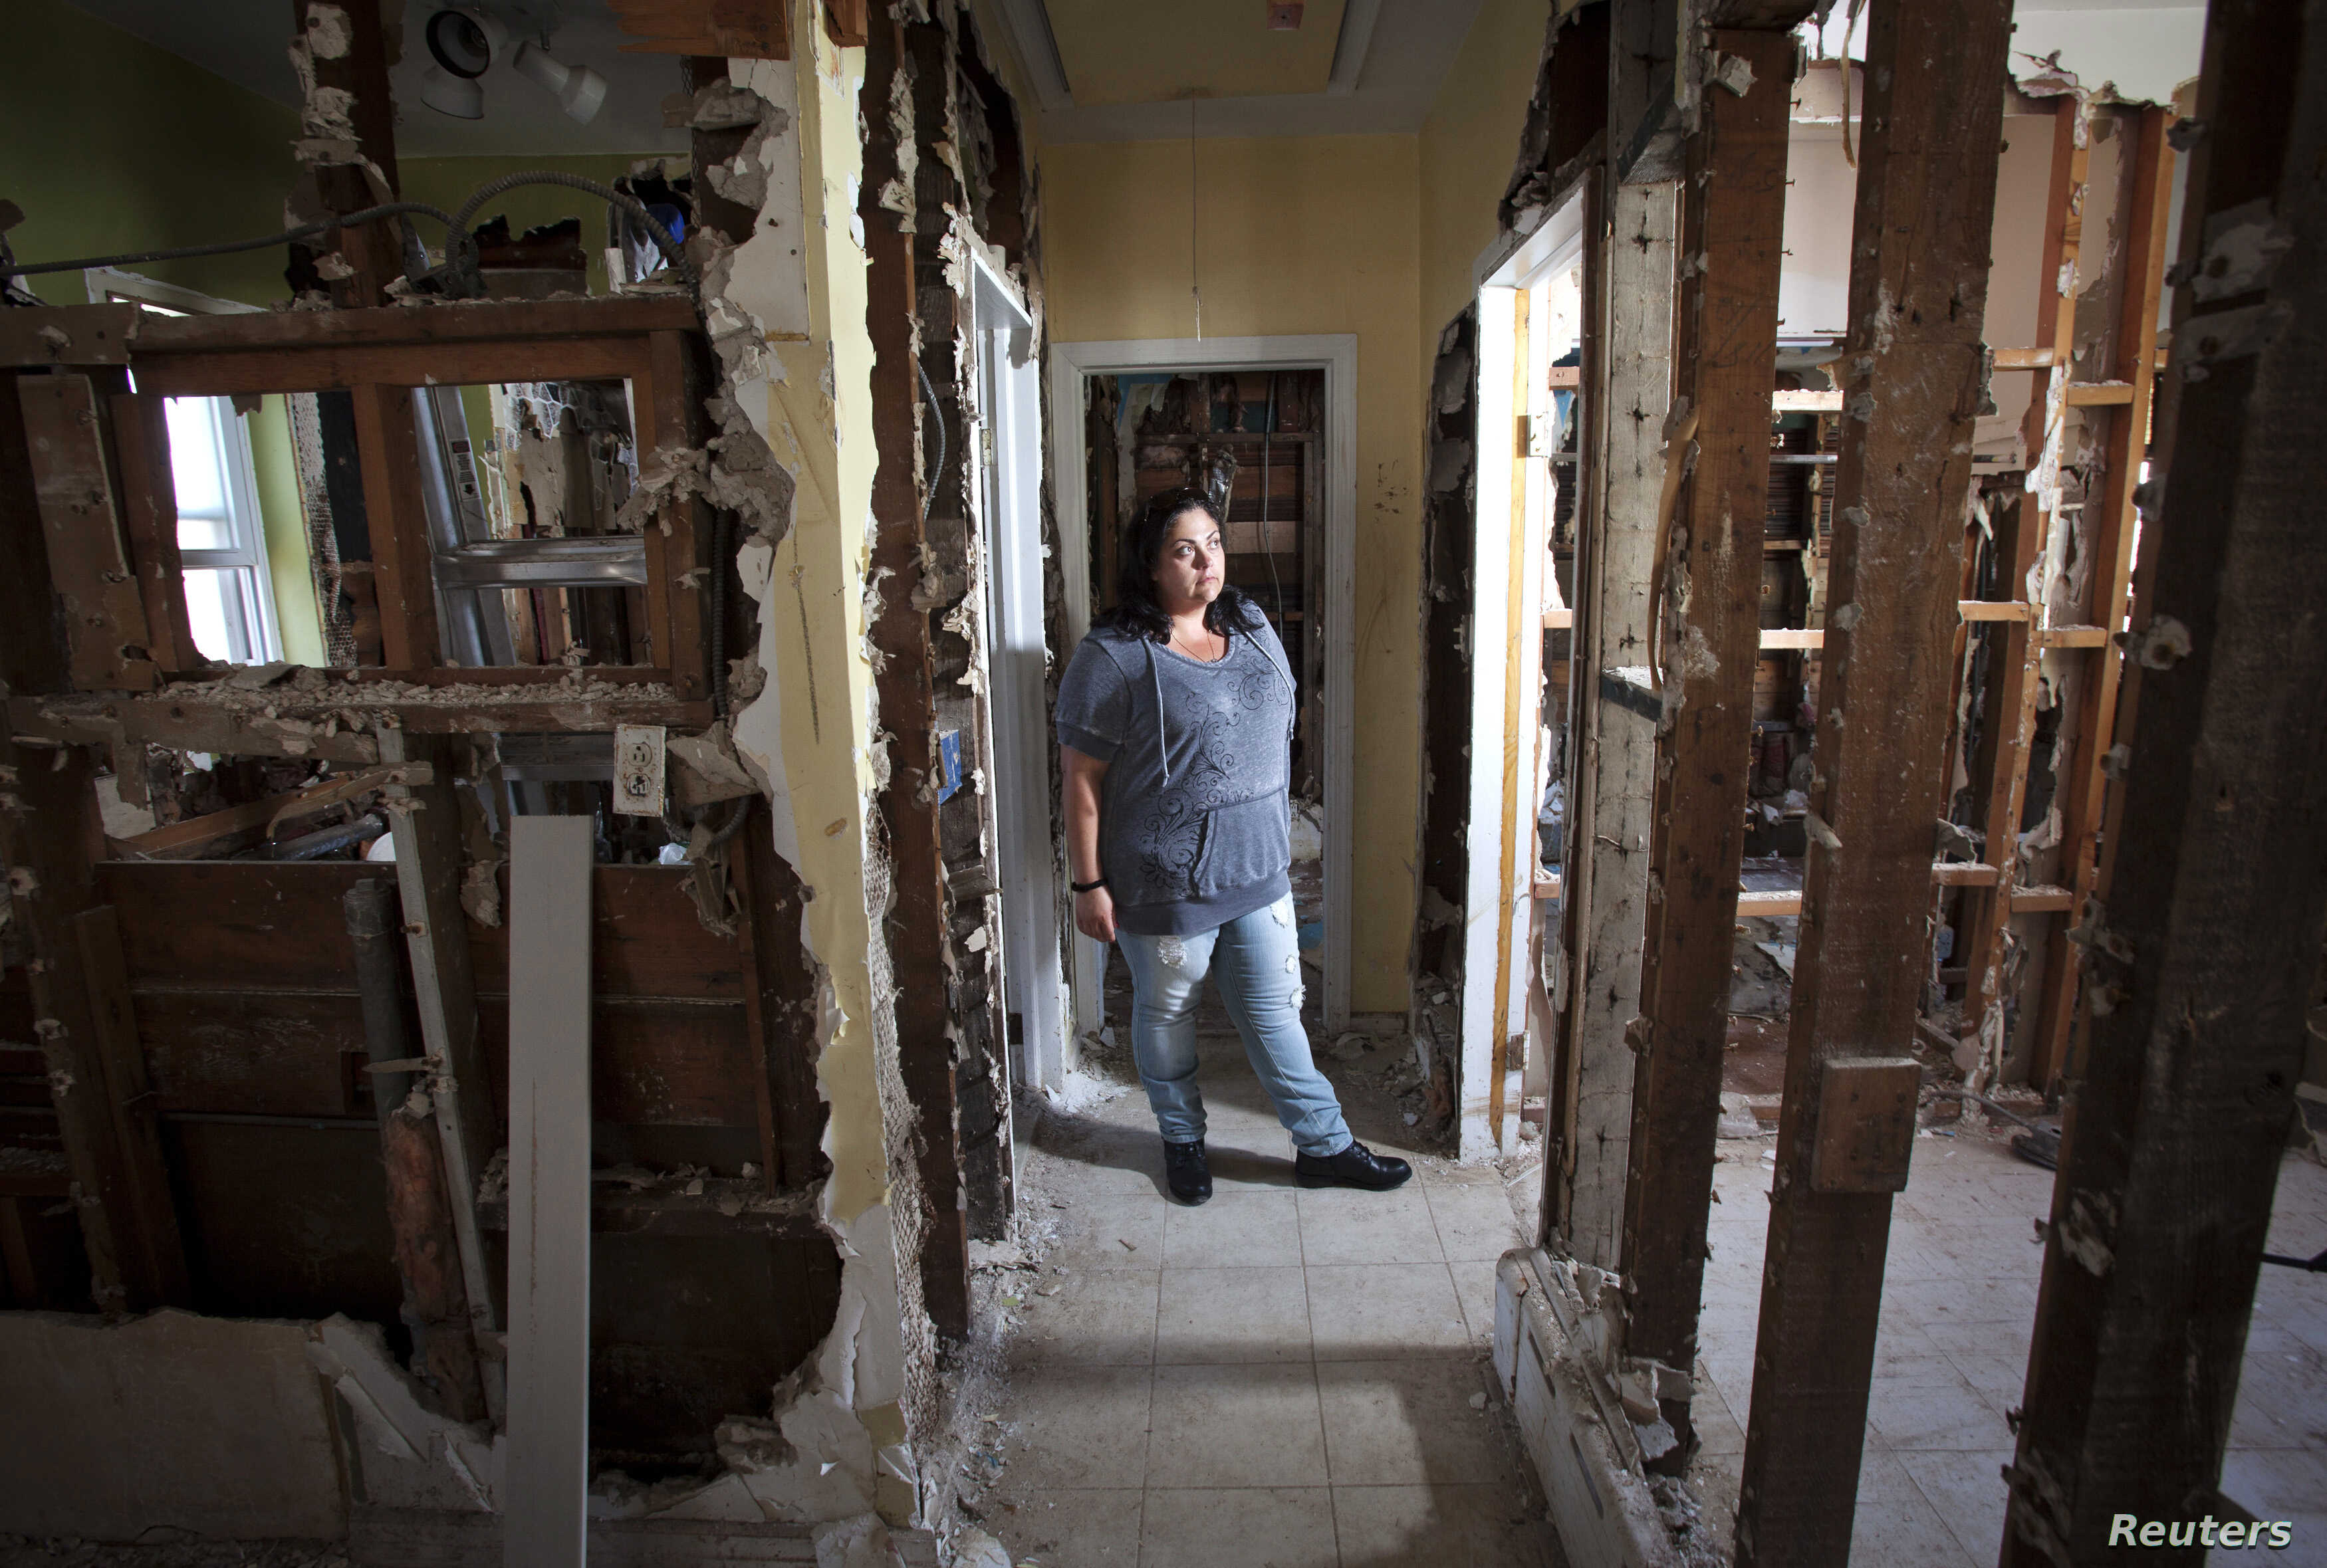 Nicole Chati is in what is left of her home after Superstorm Sandy in the Staten Island borough of New York, Sept. 20, 2013.